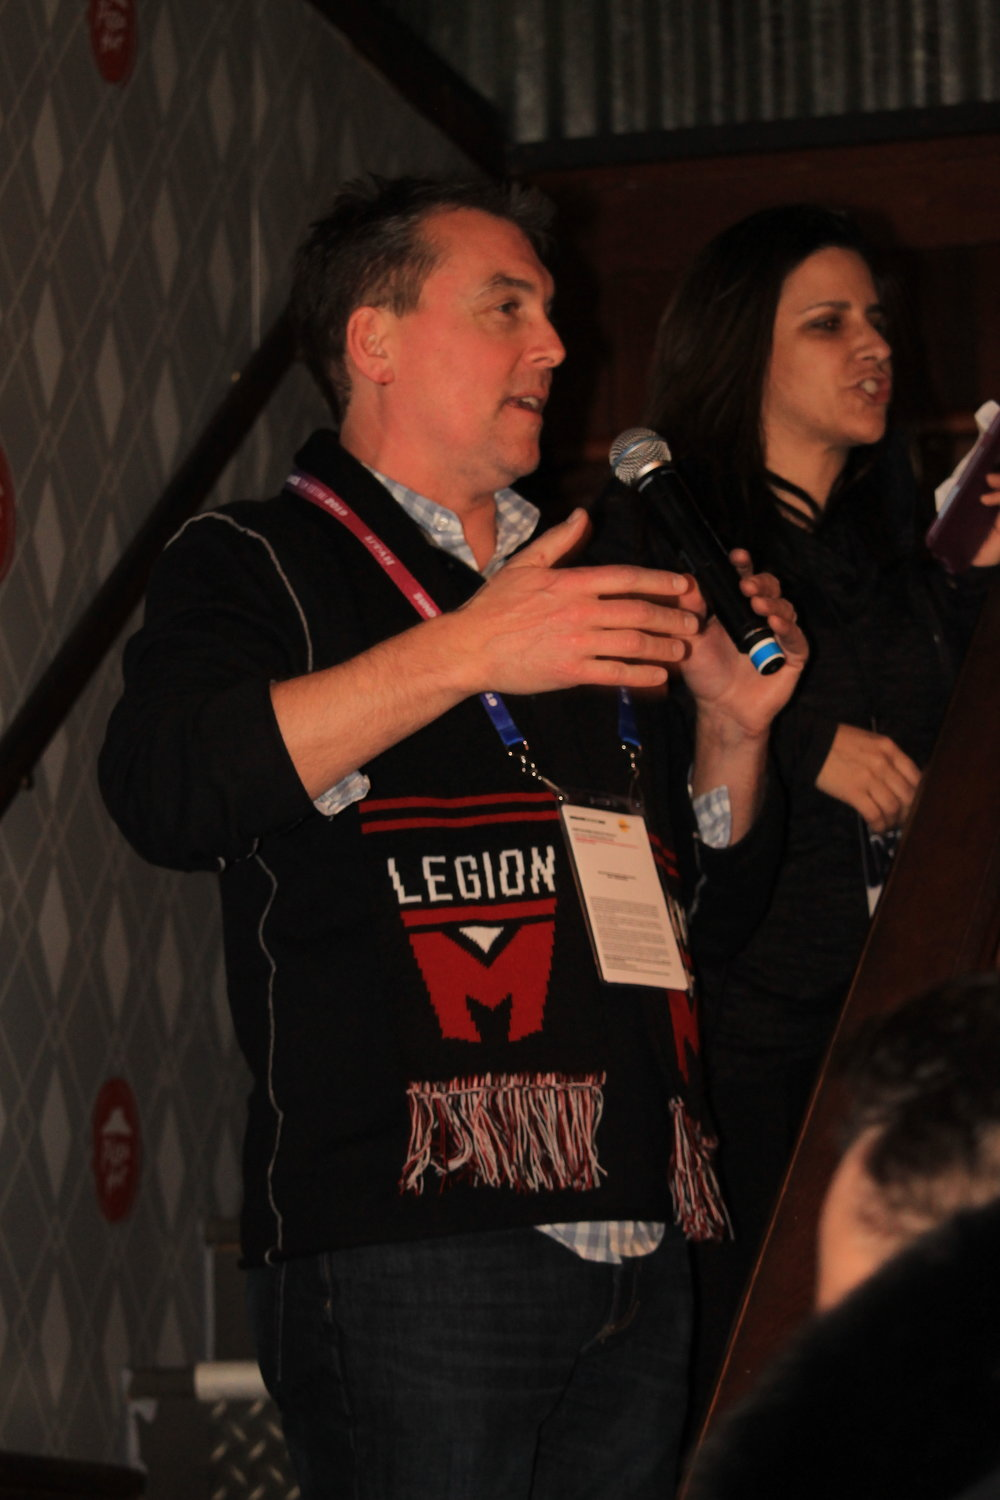 Professor Paul Scanlan teaches the class what Legion M is all about!